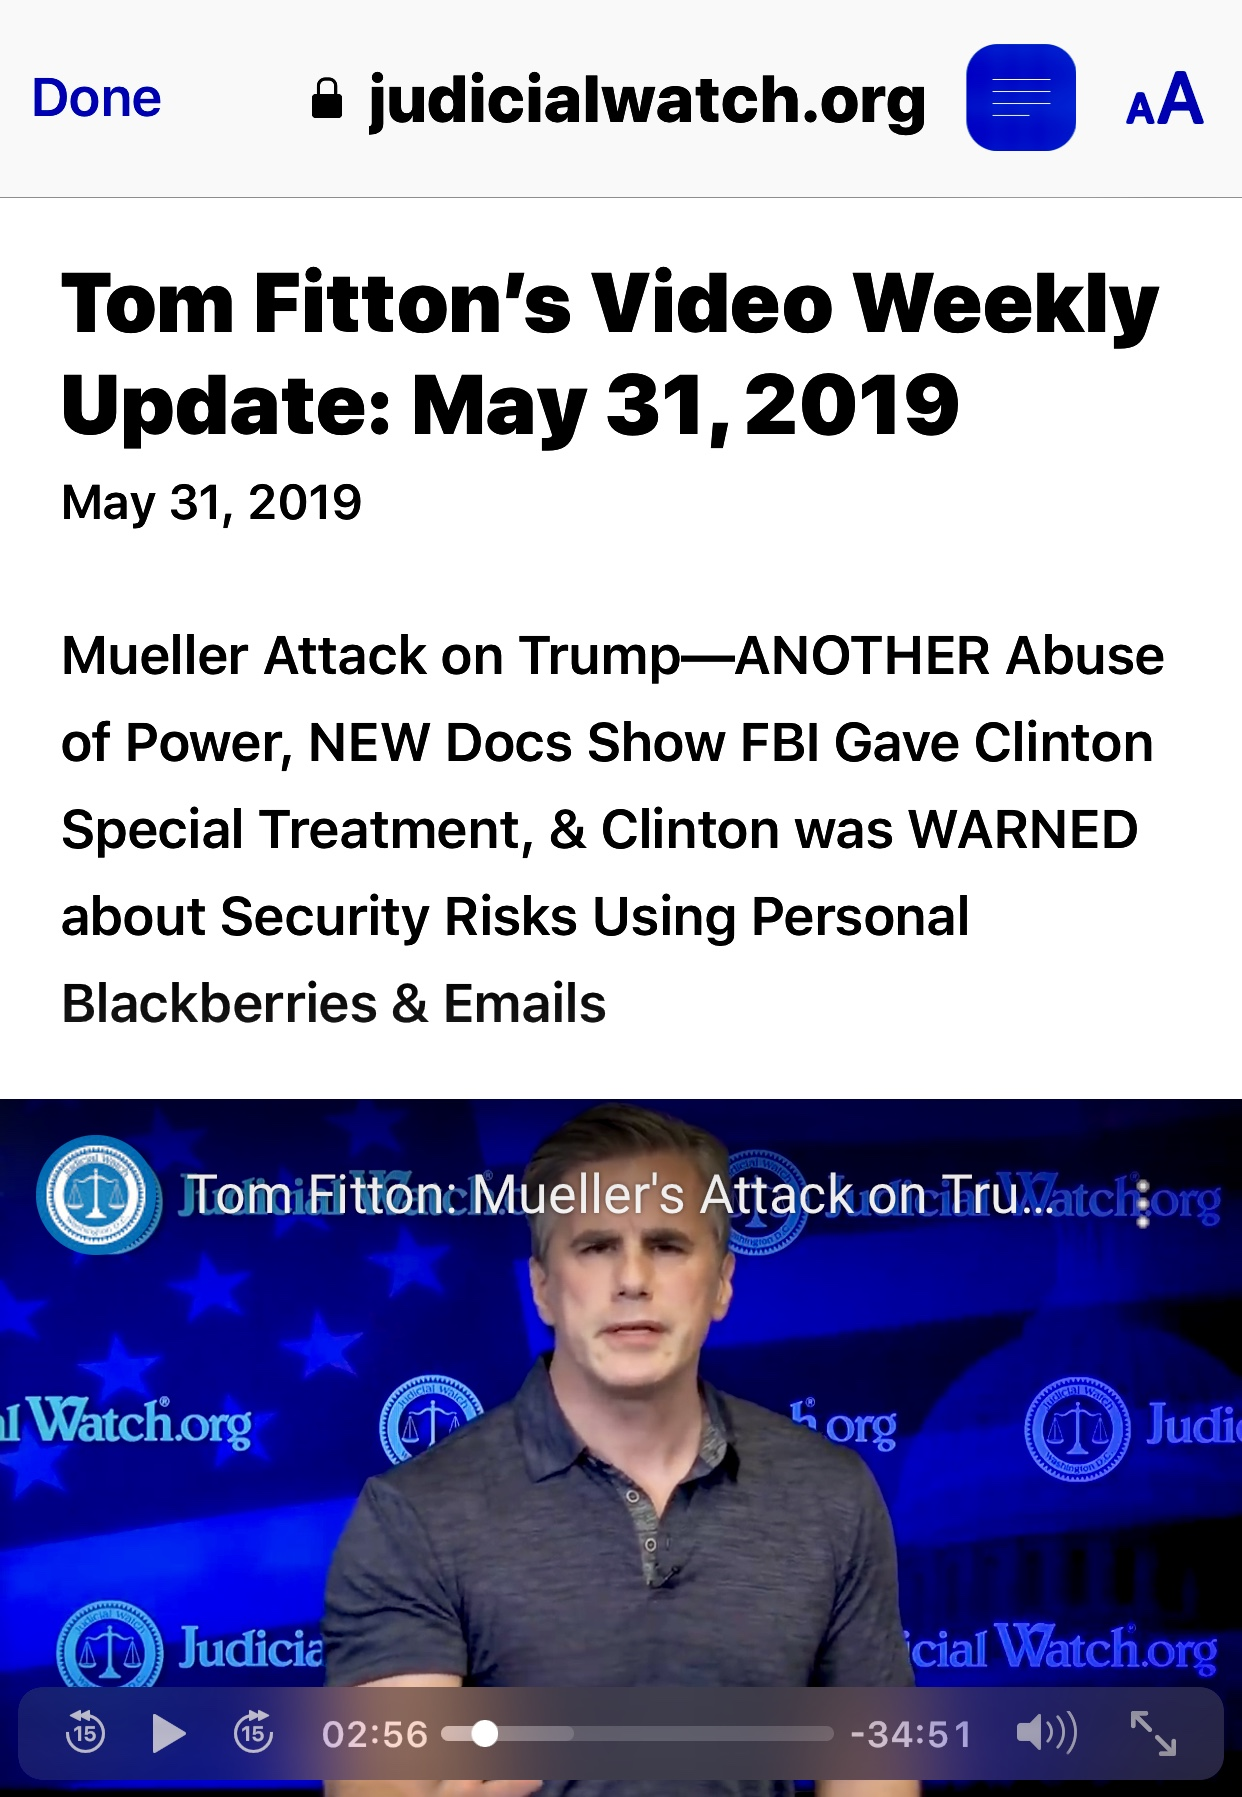 Tom Fitton's Video Weekly Update: May 31, 2019 – Judicial Watch